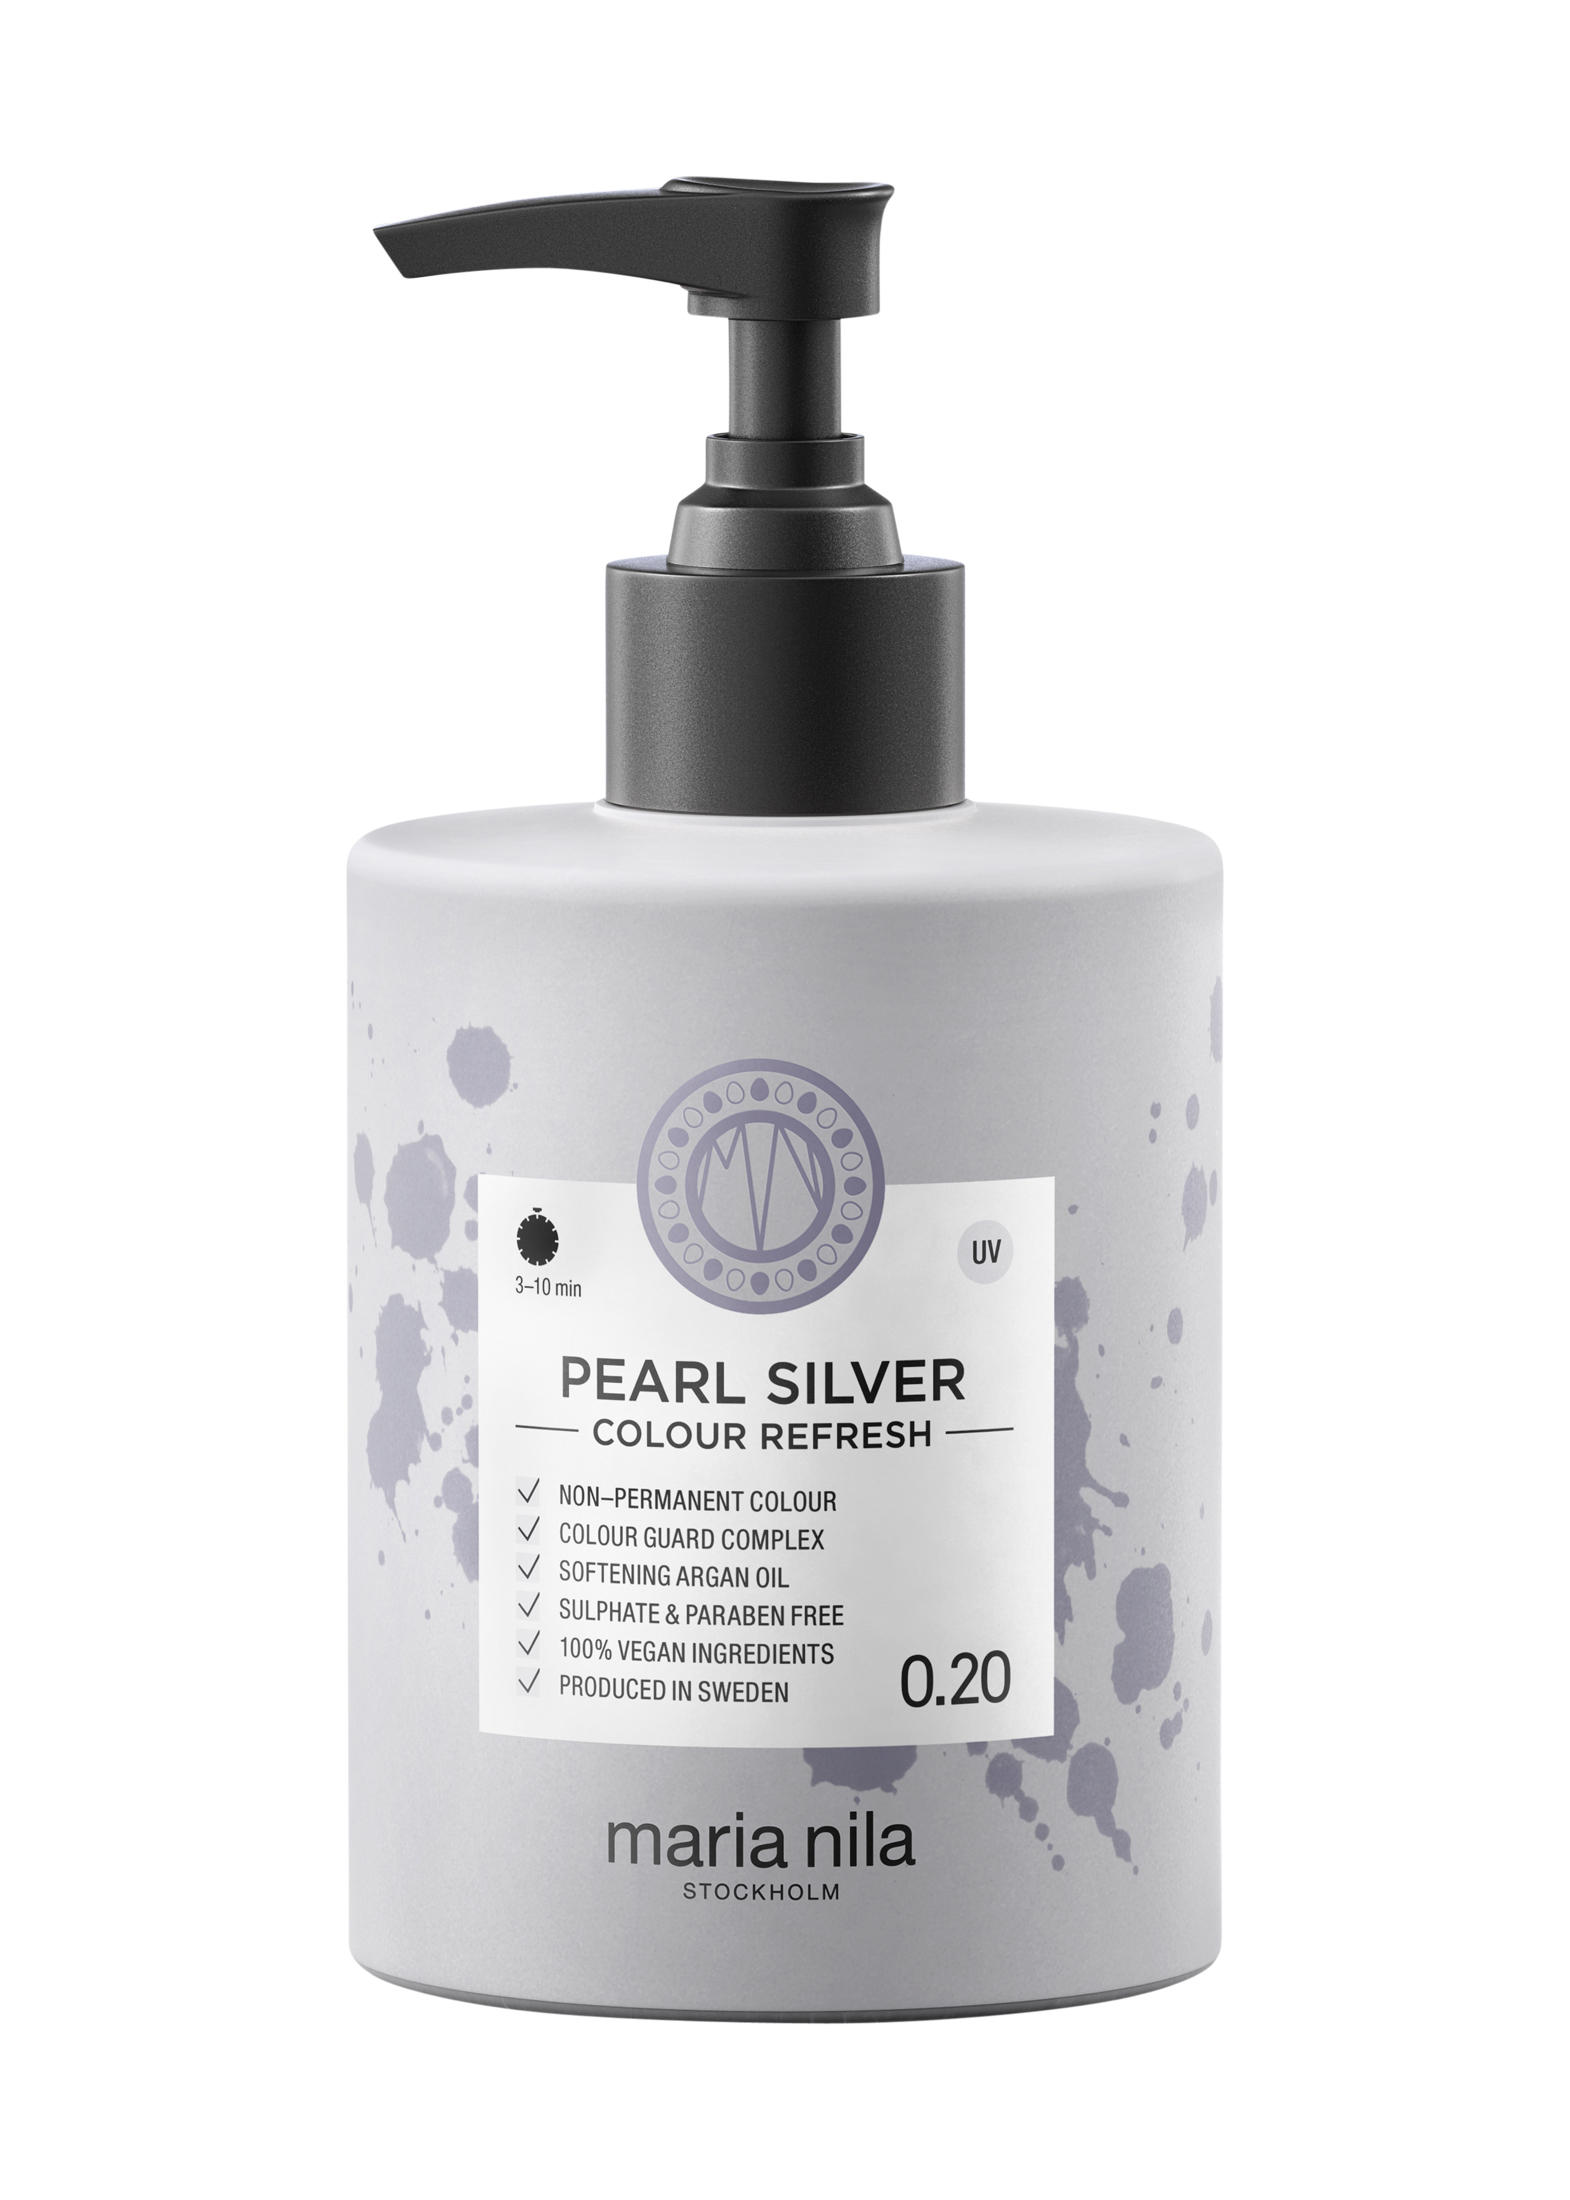 Colour Refresh Pearl Silver 0.20 image number 0